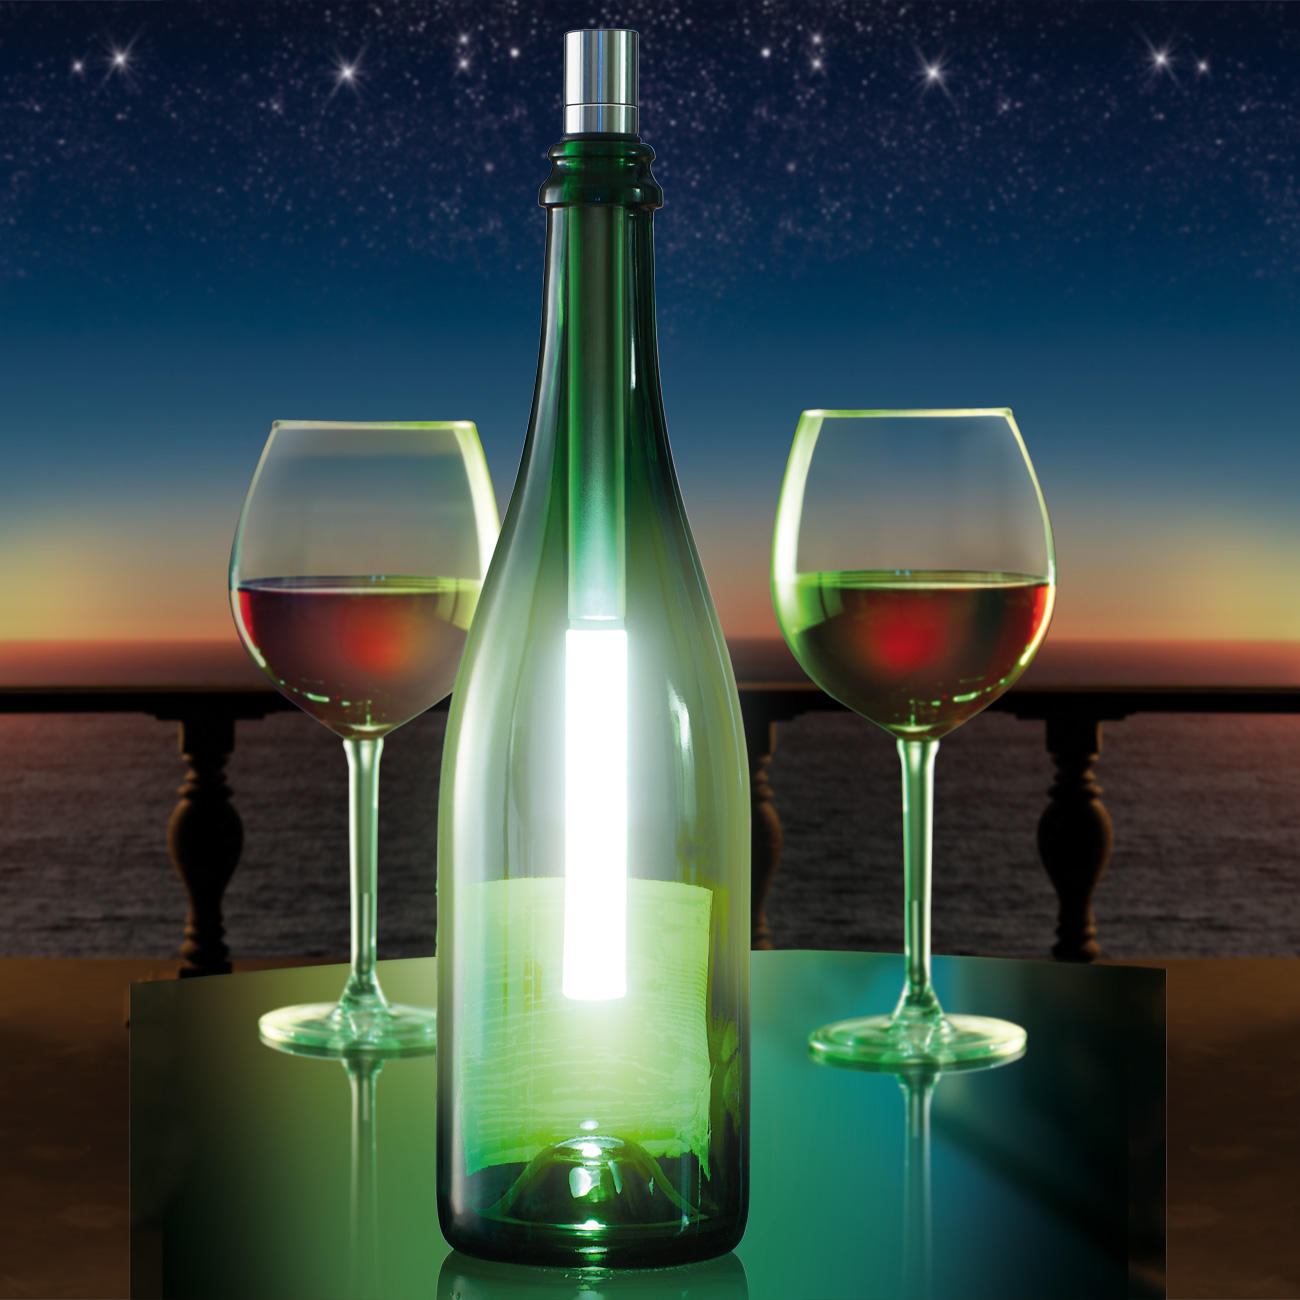 Buy bottlelight 3 year product guarantee for Champagne bottle lamp